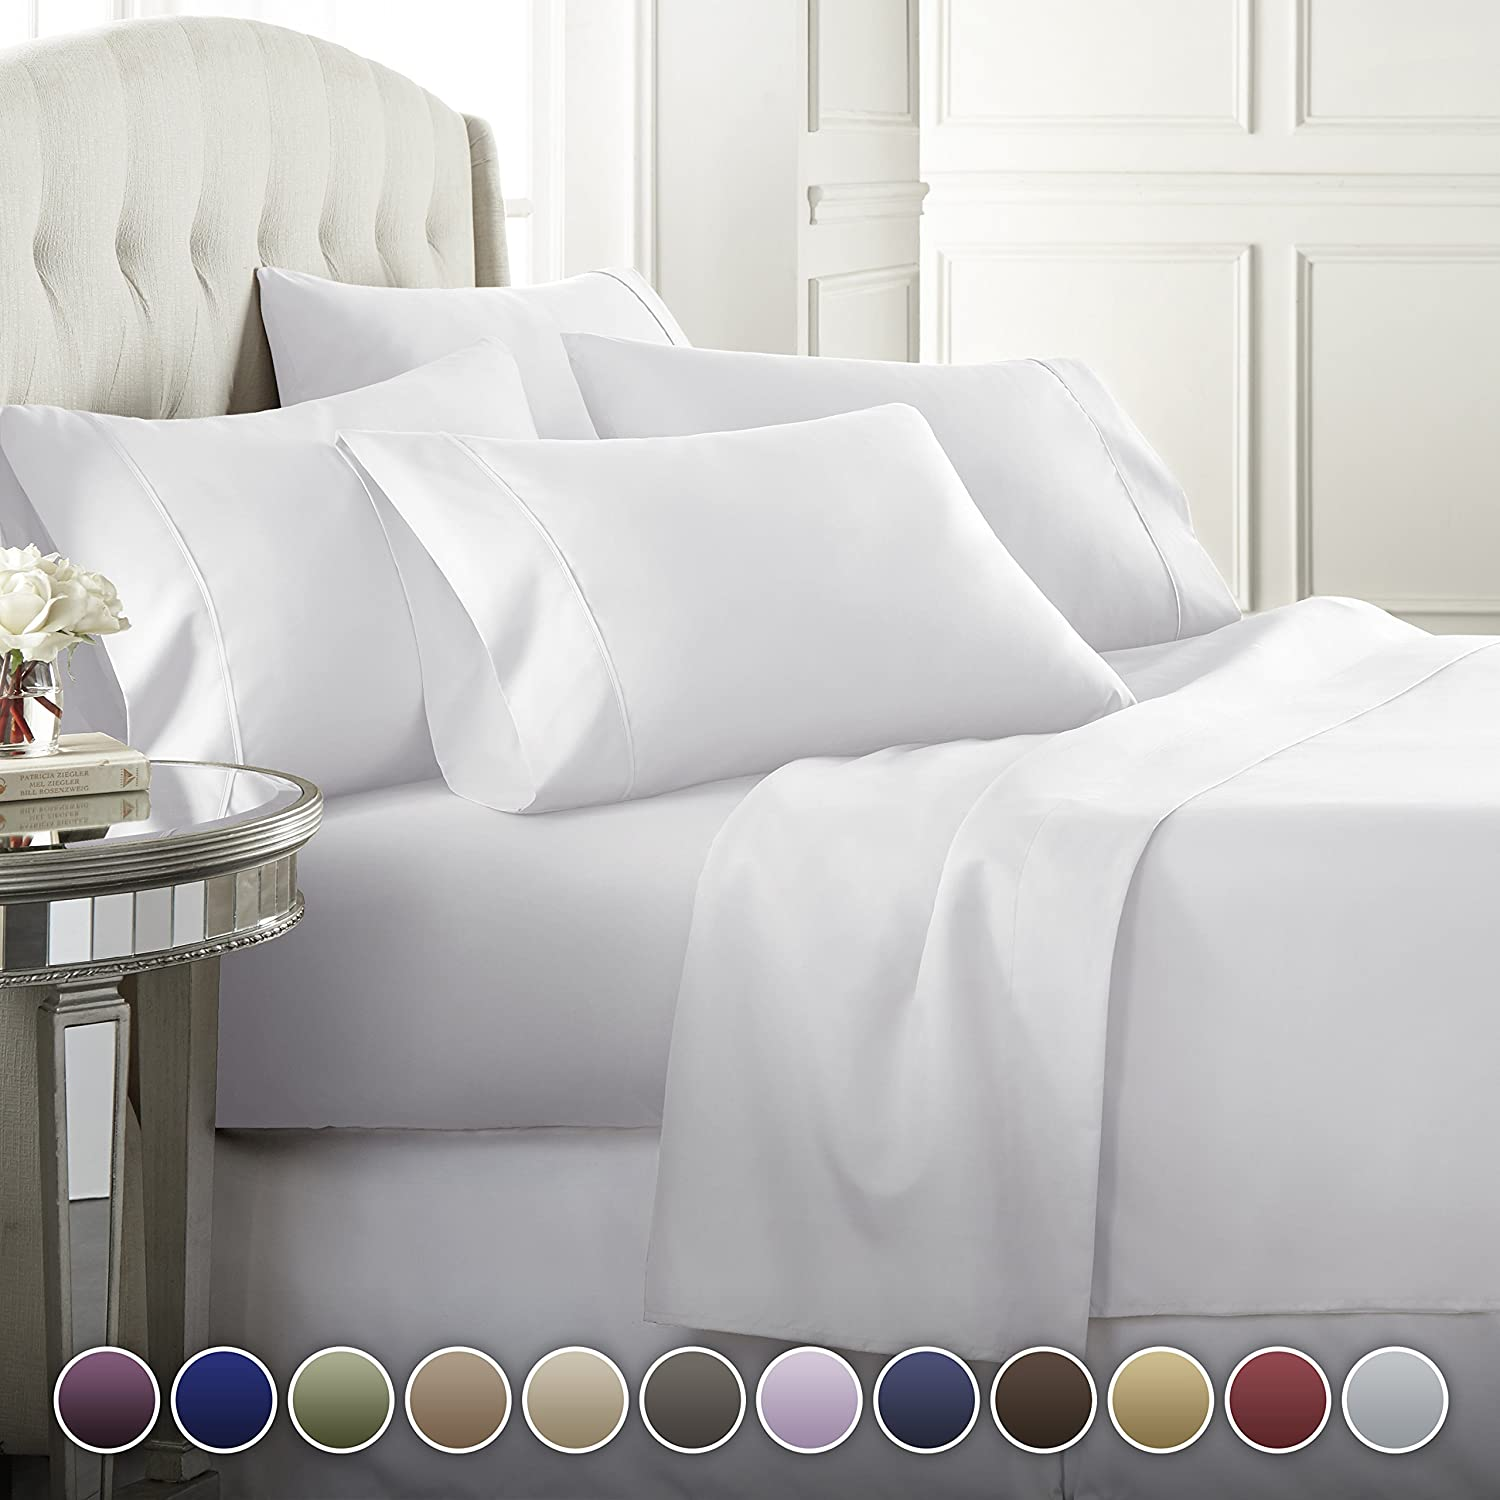 Top 10 Best Cotton Bed Sheets